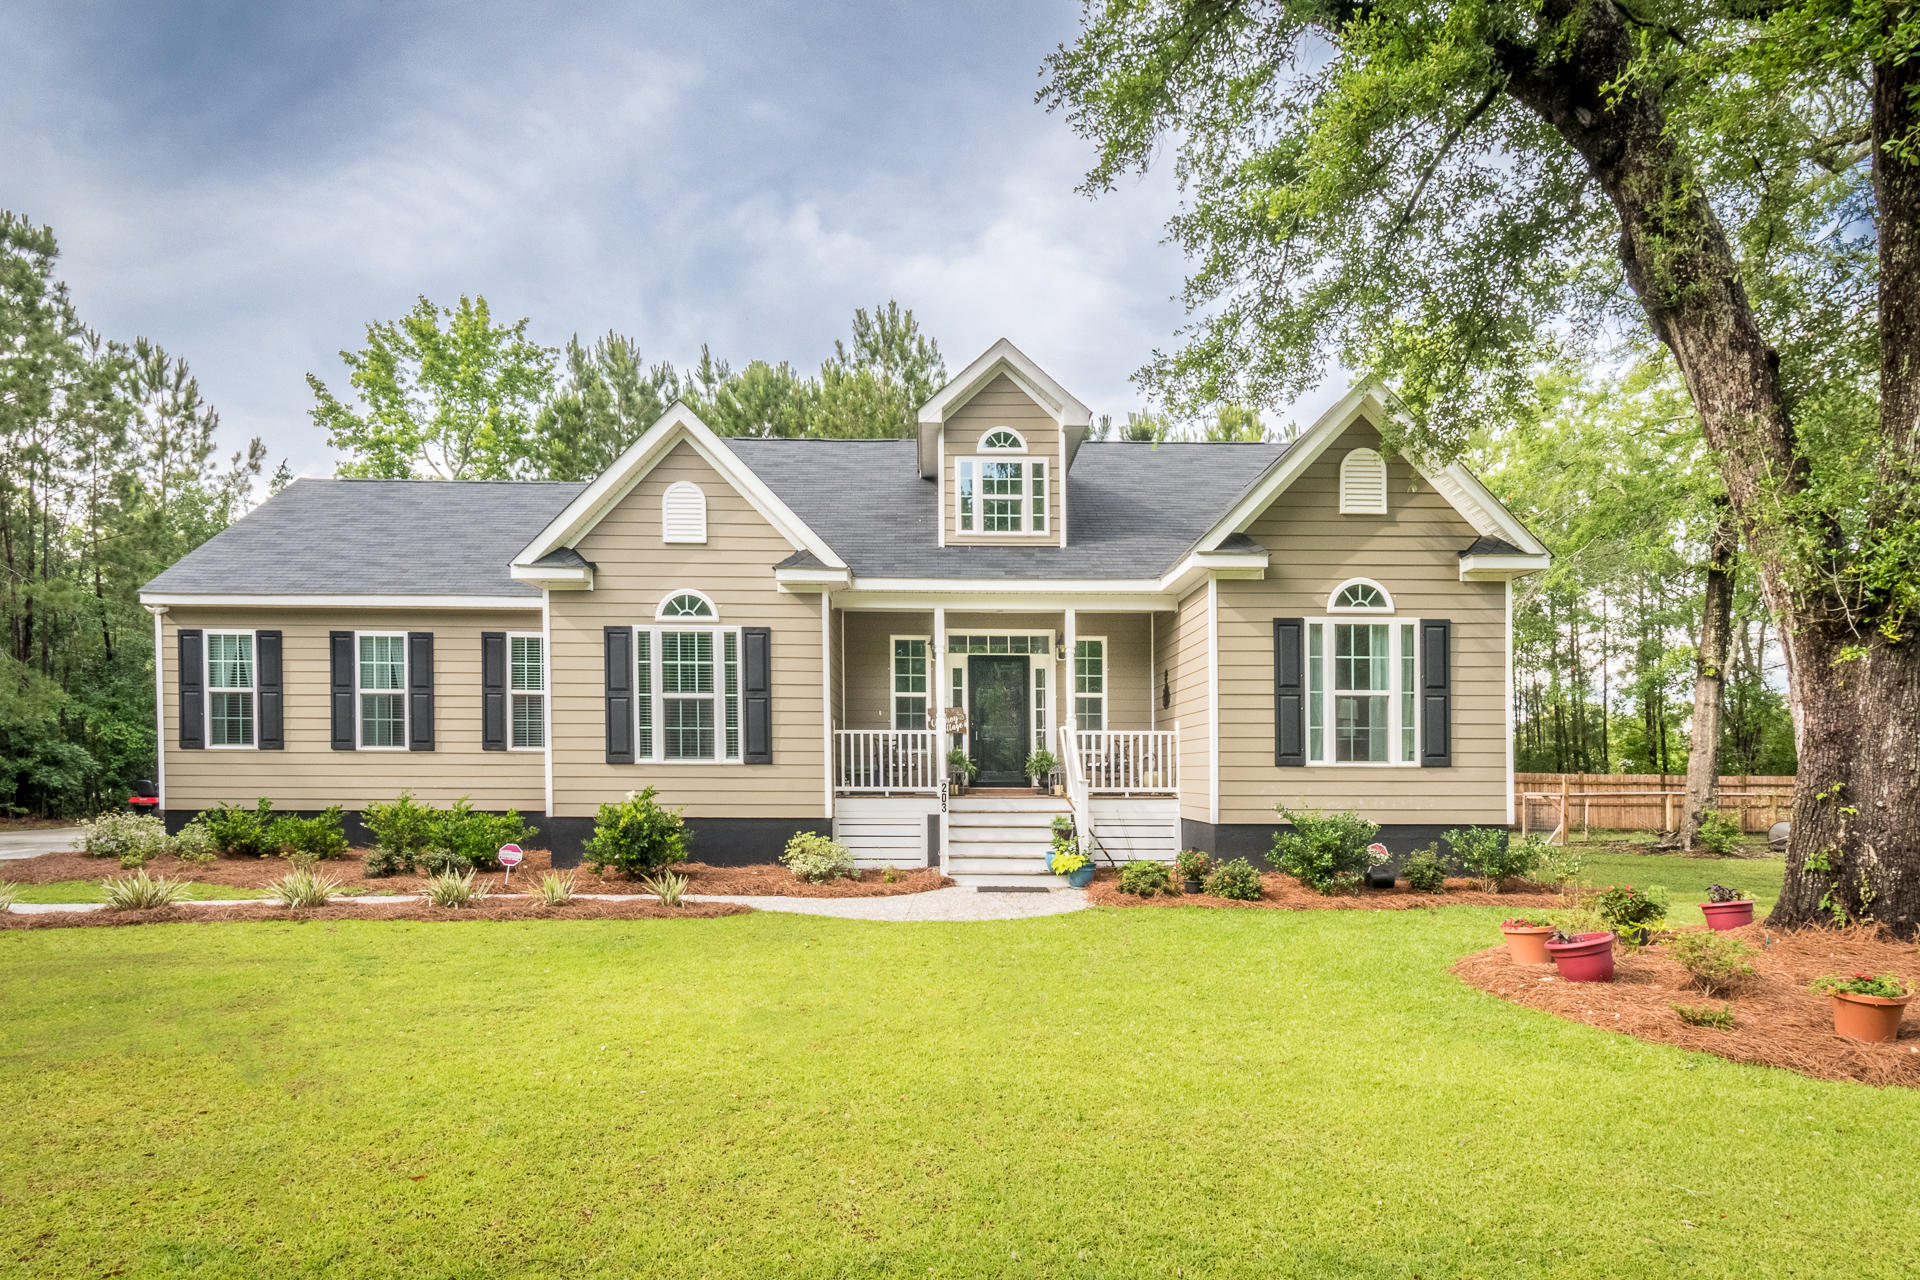 Cainhoy Landing Homes For Sale - 203 Ferry Point, Charleston, SC - 24